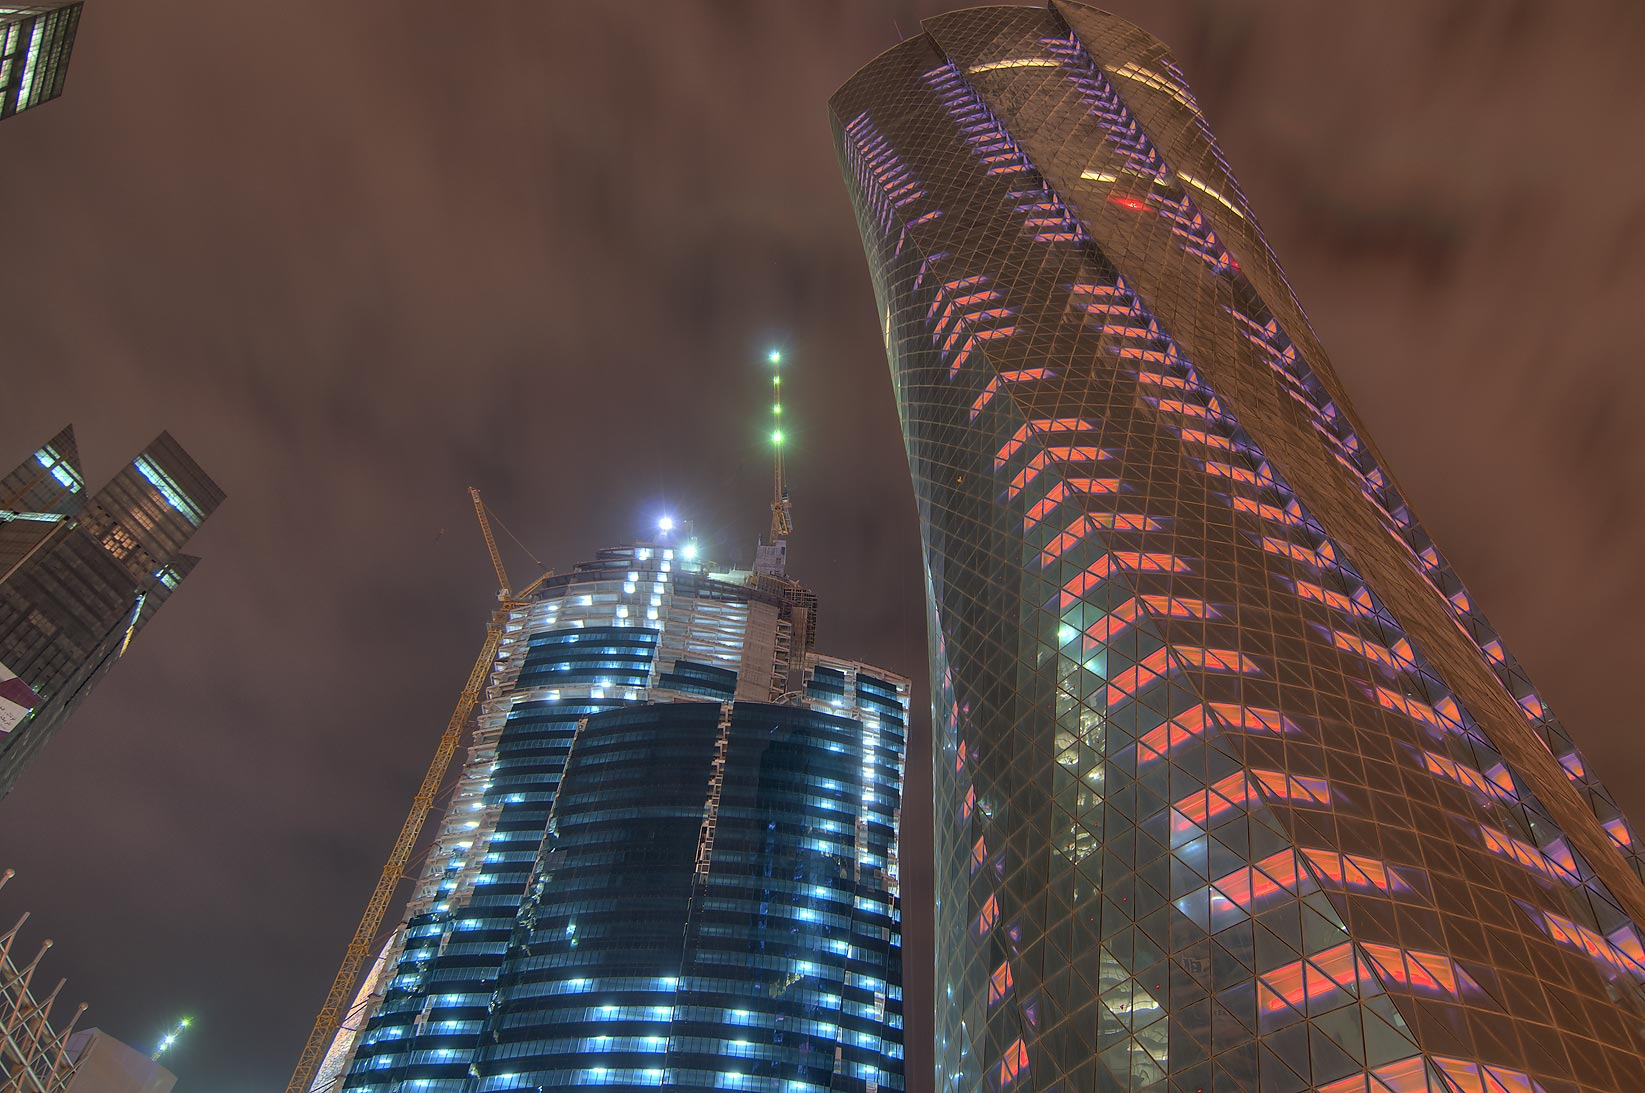 World Trade Center Tower and Complex (WTC) and Al Bidda Tower in West Bay. Doha, Qatar